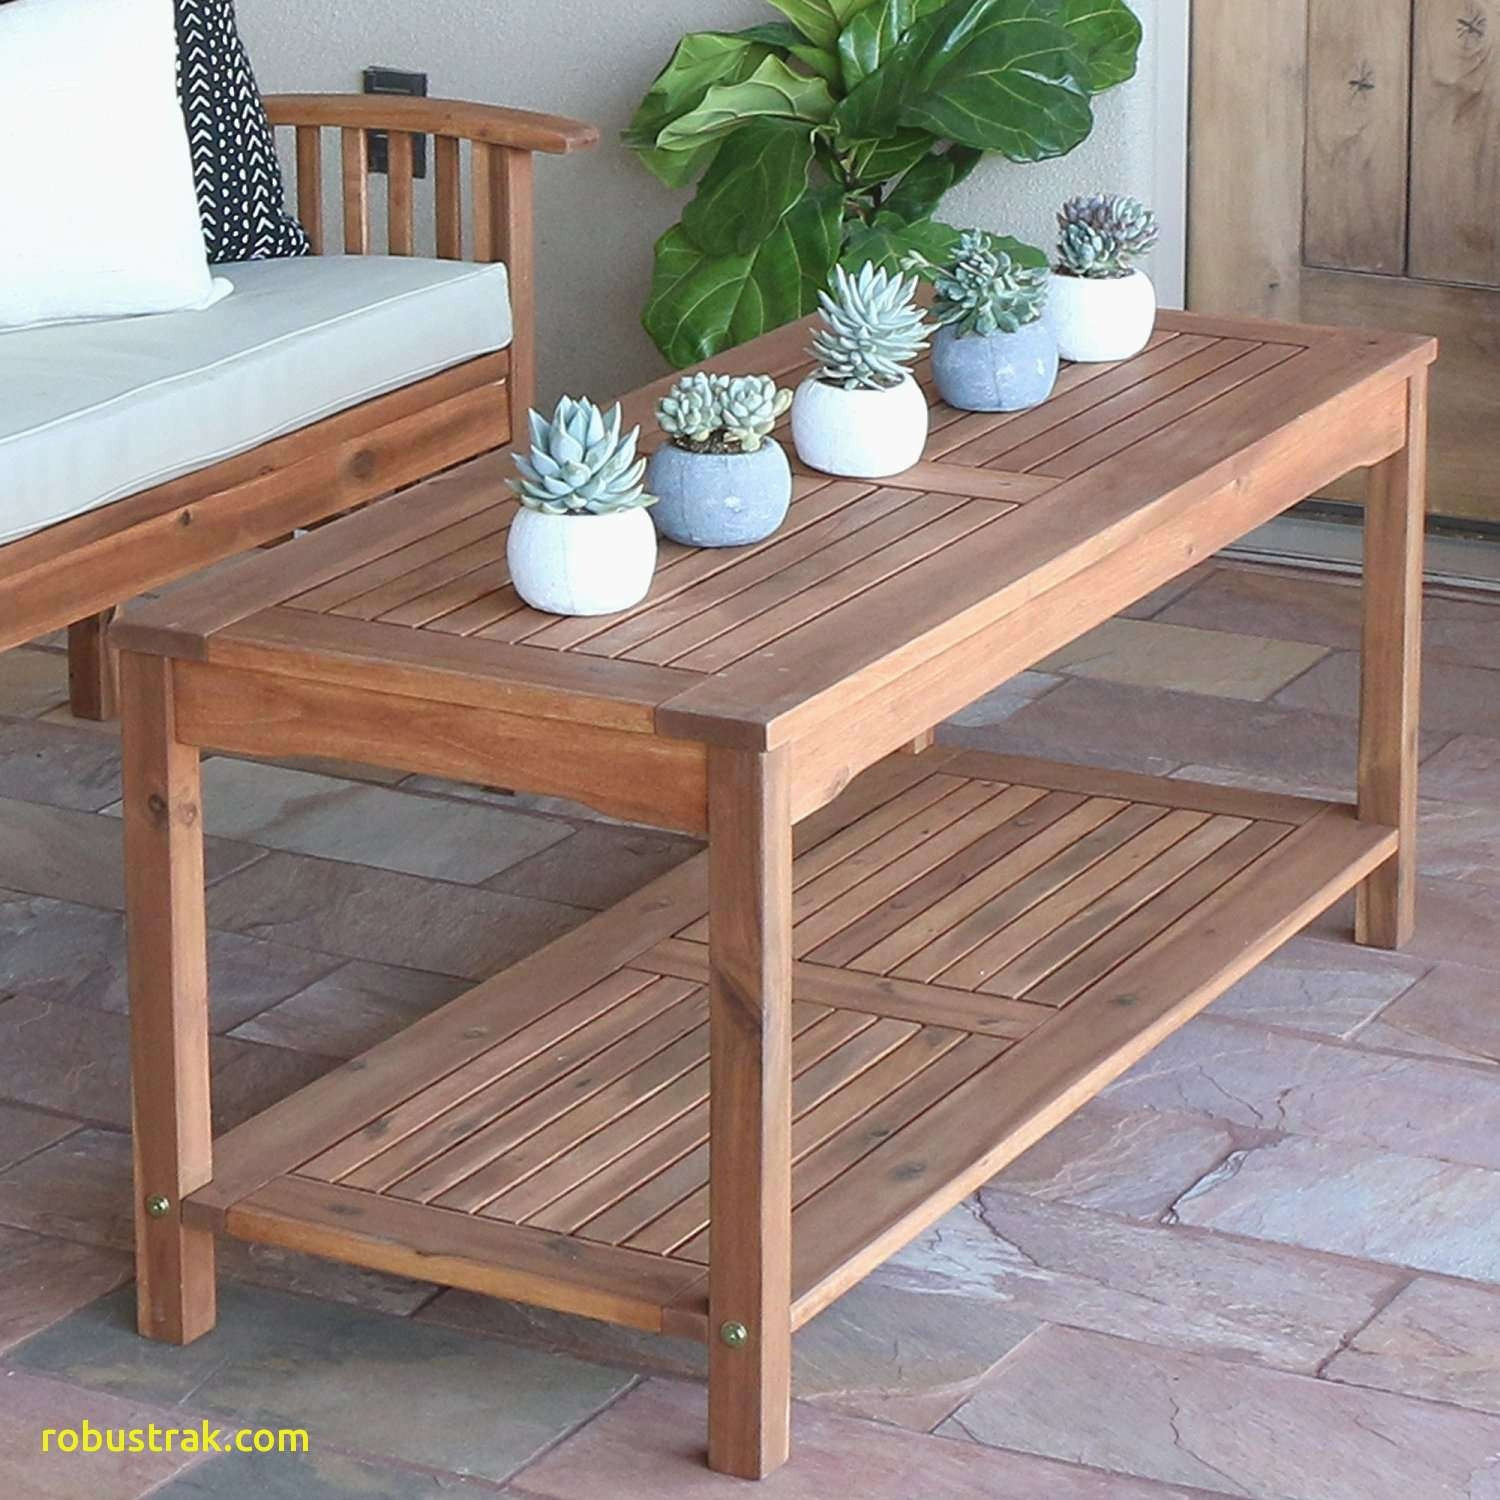 wooden vase base of unique table base ideas reviews 332ndf org within beautiful diy coffee table base design diy outdoor table